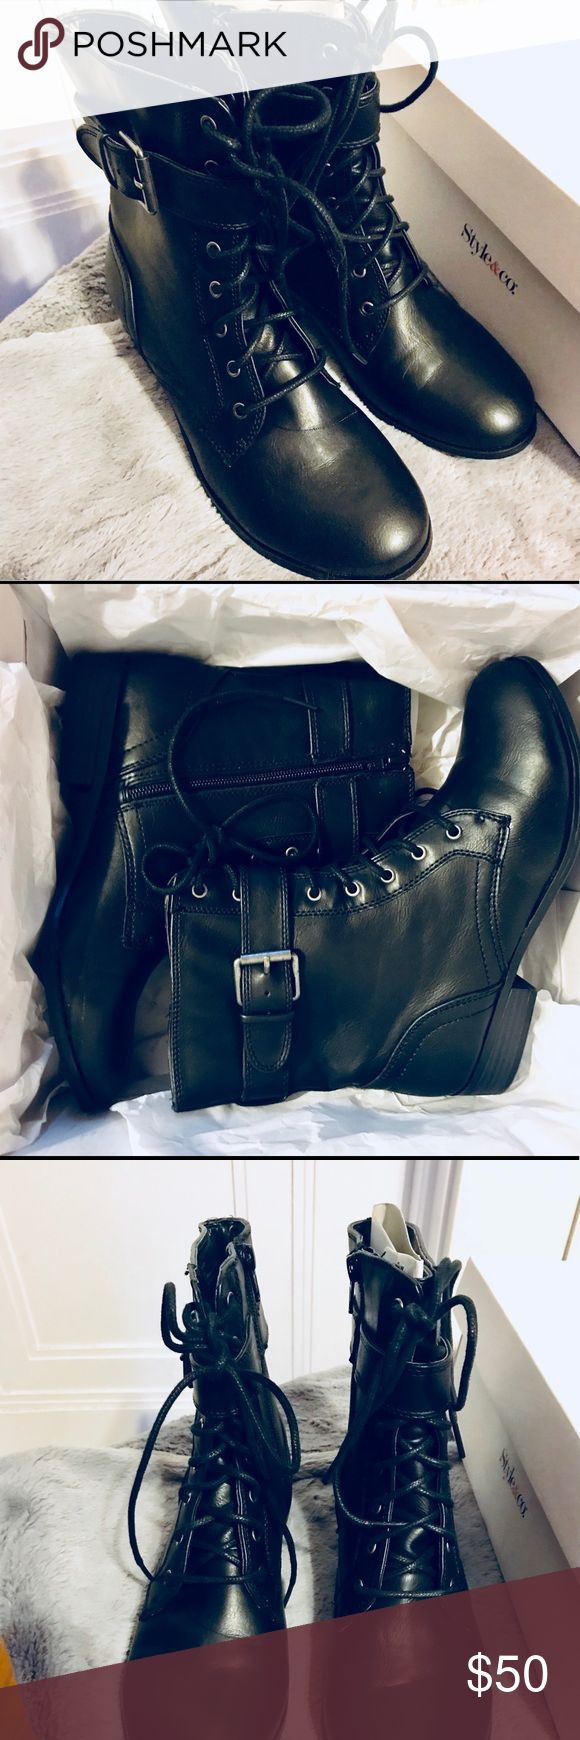 NWT Black Combat Boots Style & co. PERFECT for fall and winter! brand new and never worn, still in original packaging. Style & Co Shoes Combat & Moto Boots